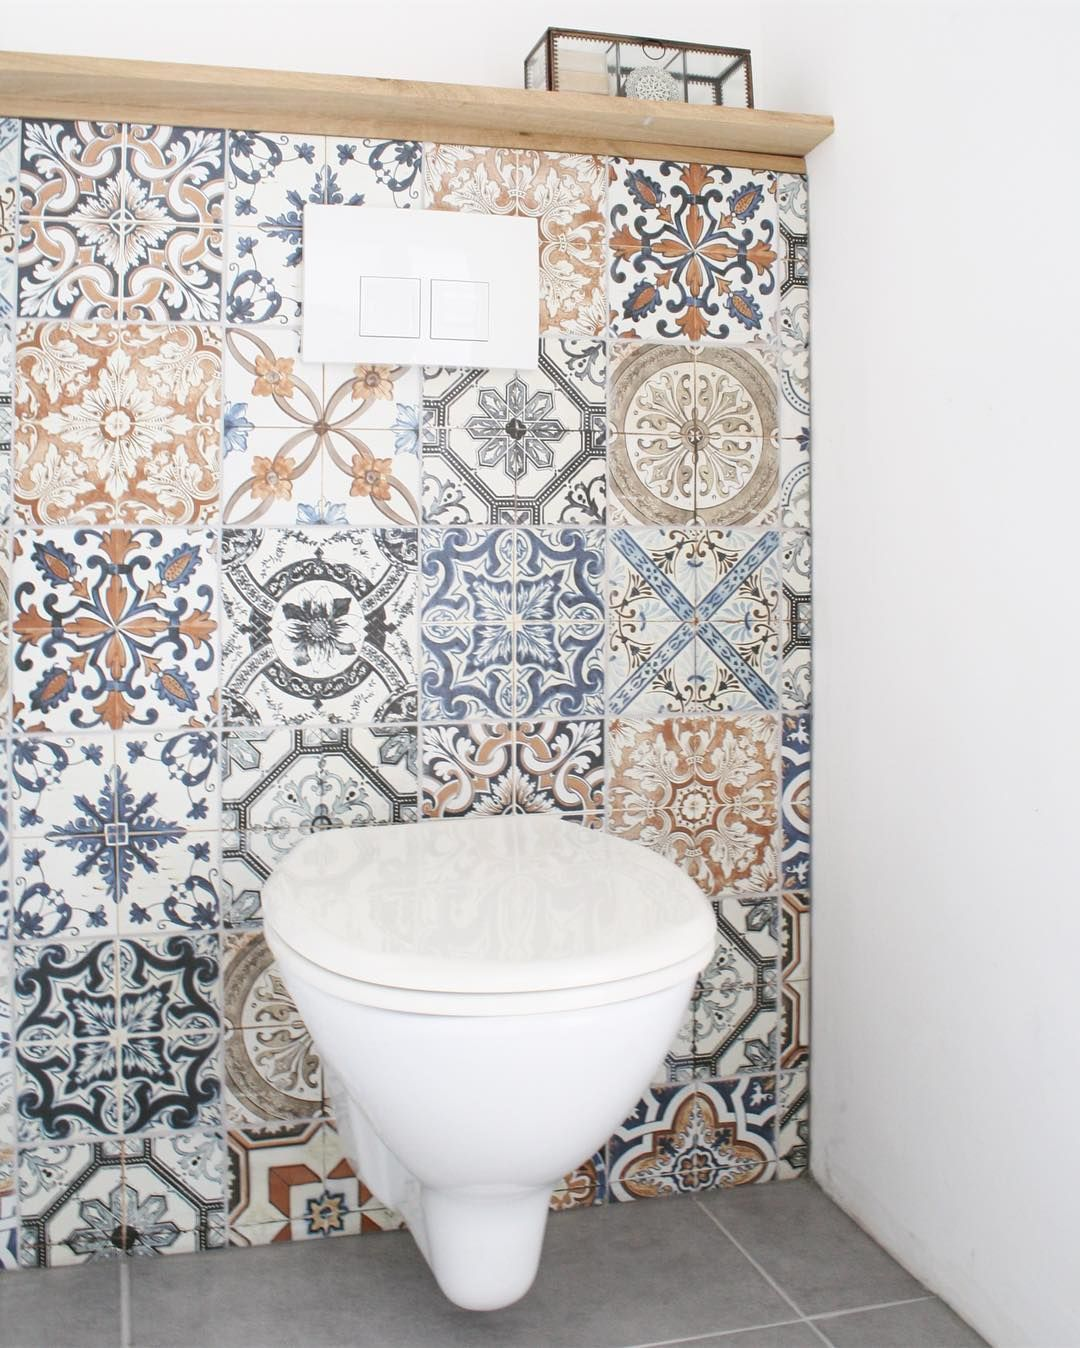 Mosaic Bathroom Tile Ideas: I Love The Idea Of Random Mosaic Tiles As A Backsplash In